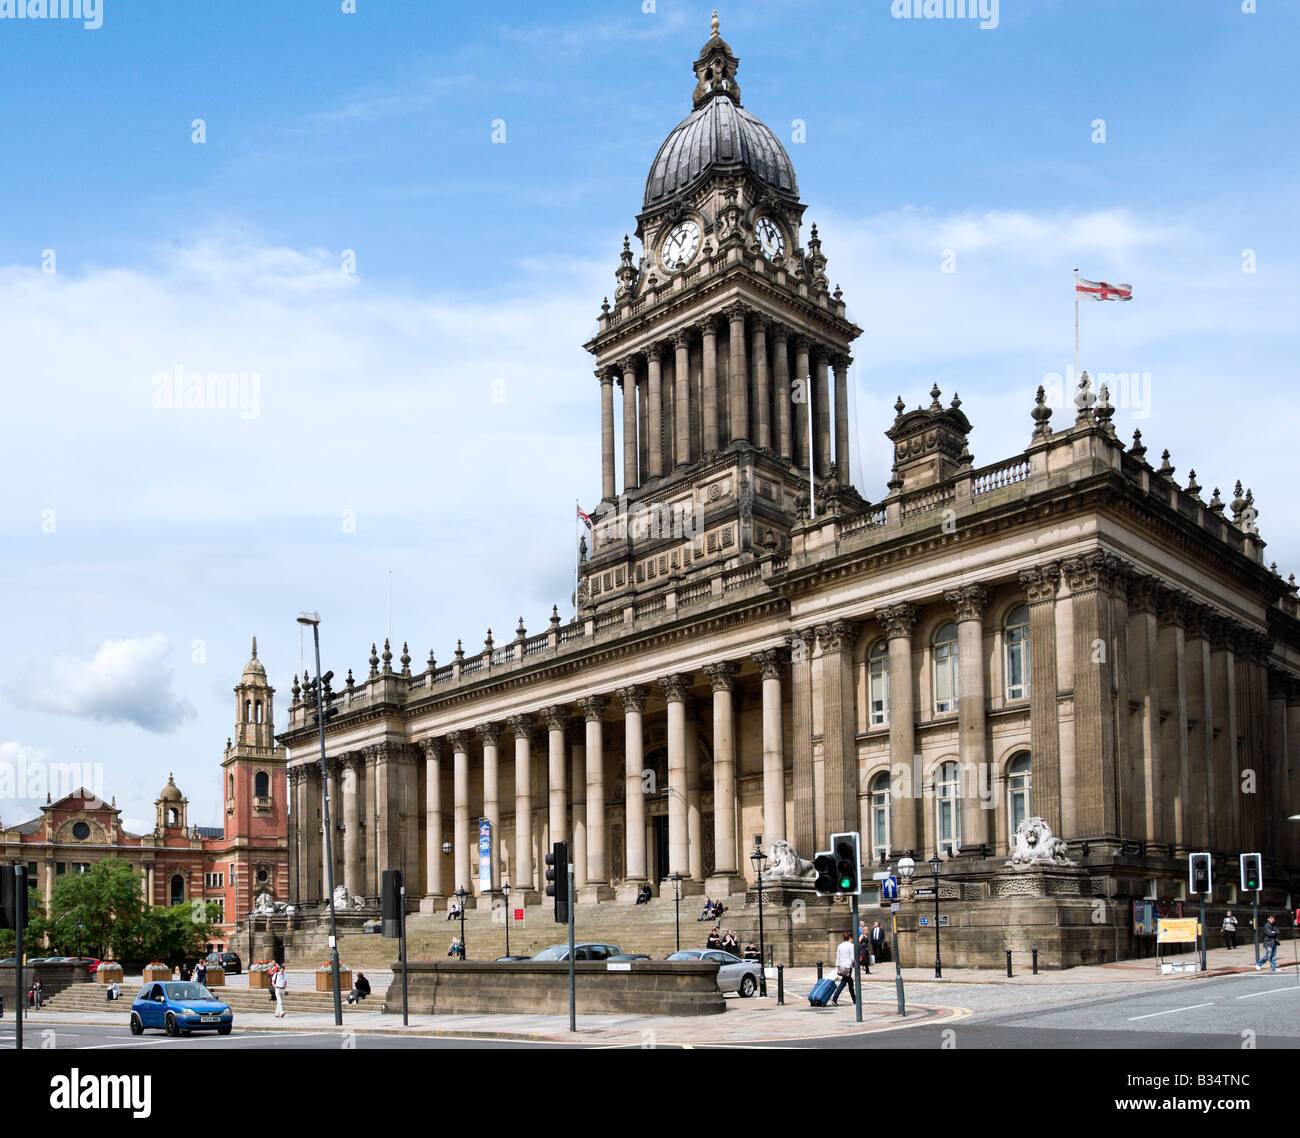 Leeds Town Hall (designed by the local architect Cuthbert Brodrick), Leeds, West Yorkshire, England - Stock Image